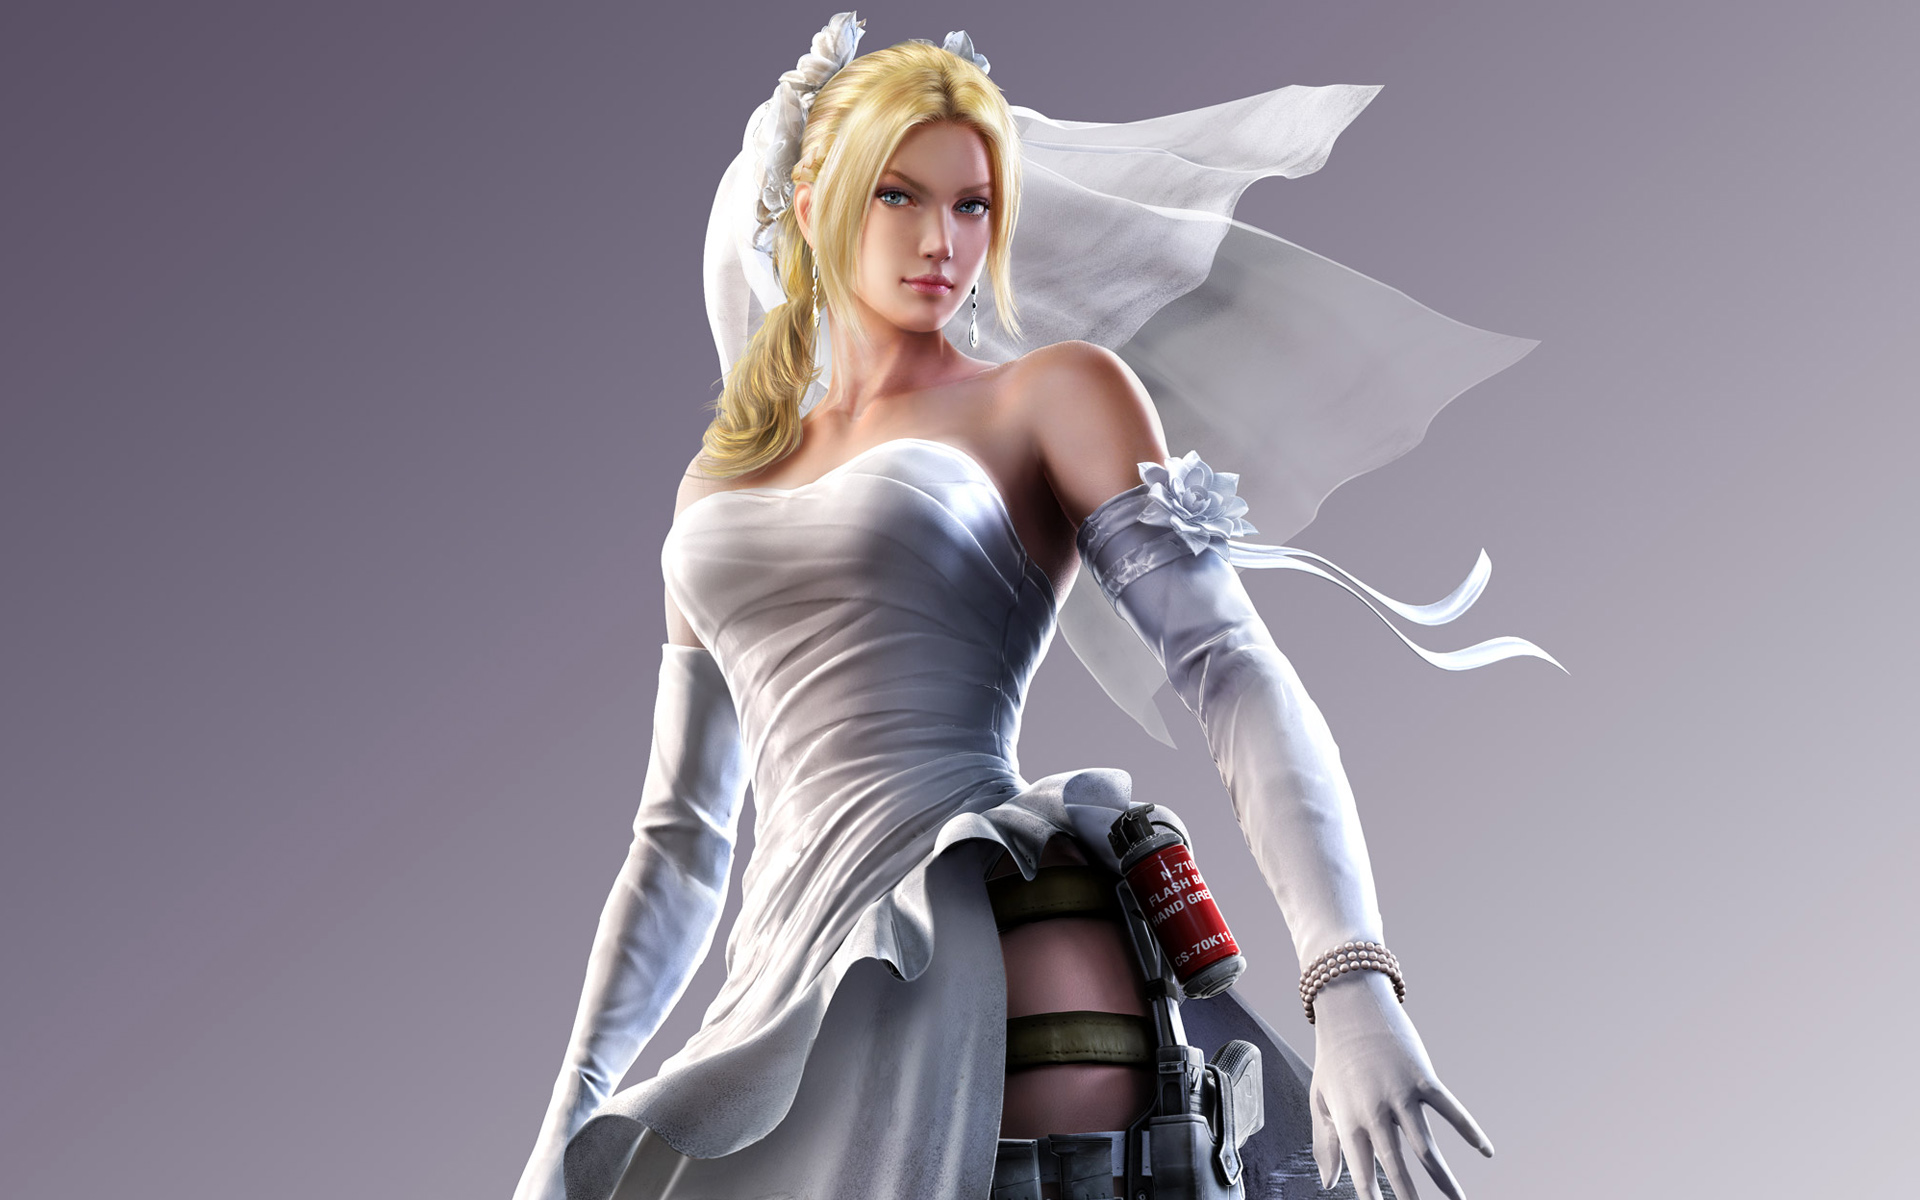 Street Fighter X Tekken Nina Williams Hd Wallpaper